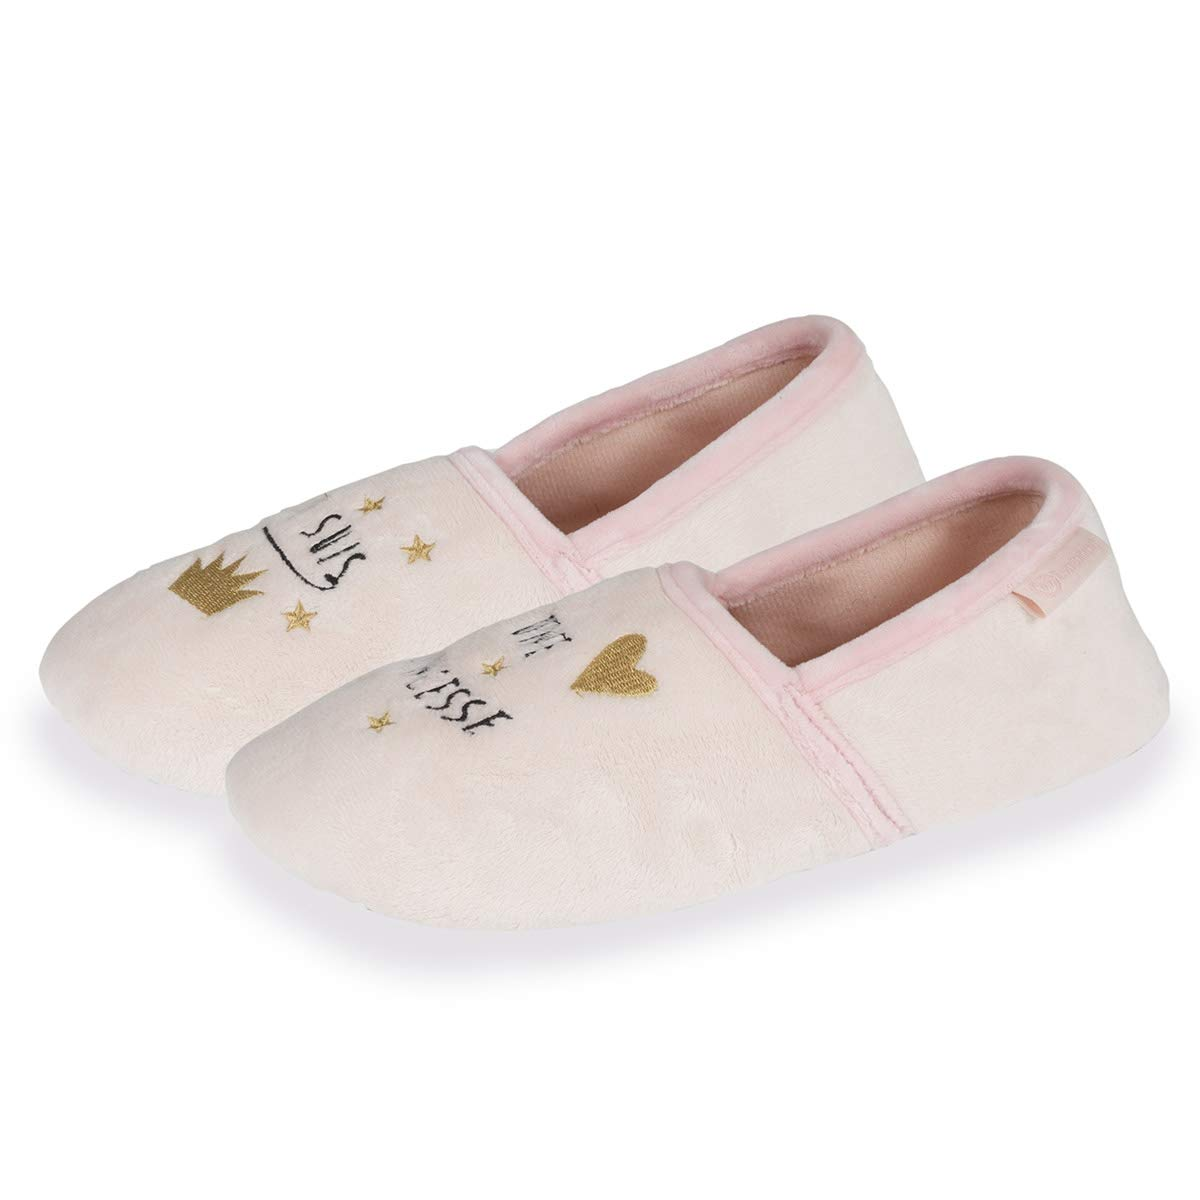 Isotoner Chaussons Slippers Femmes Broderie Princesse